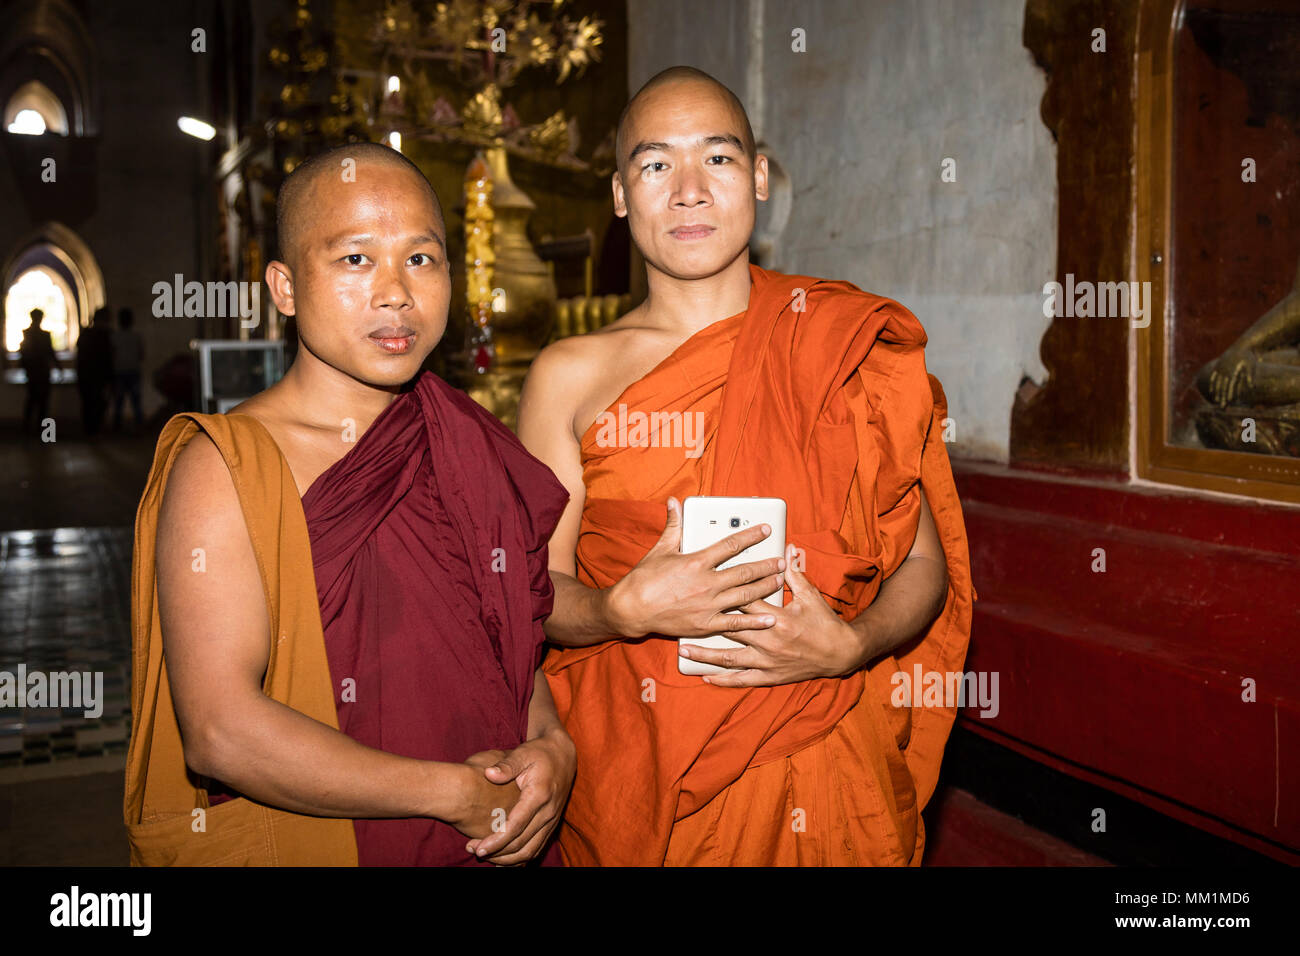 Bagan, Myanmar, December 29, 2017:  Portrait of two Buddhist monks in the Ananda Pagoda in Bagan. A monk holds a tablet in his hand. - Stock Image